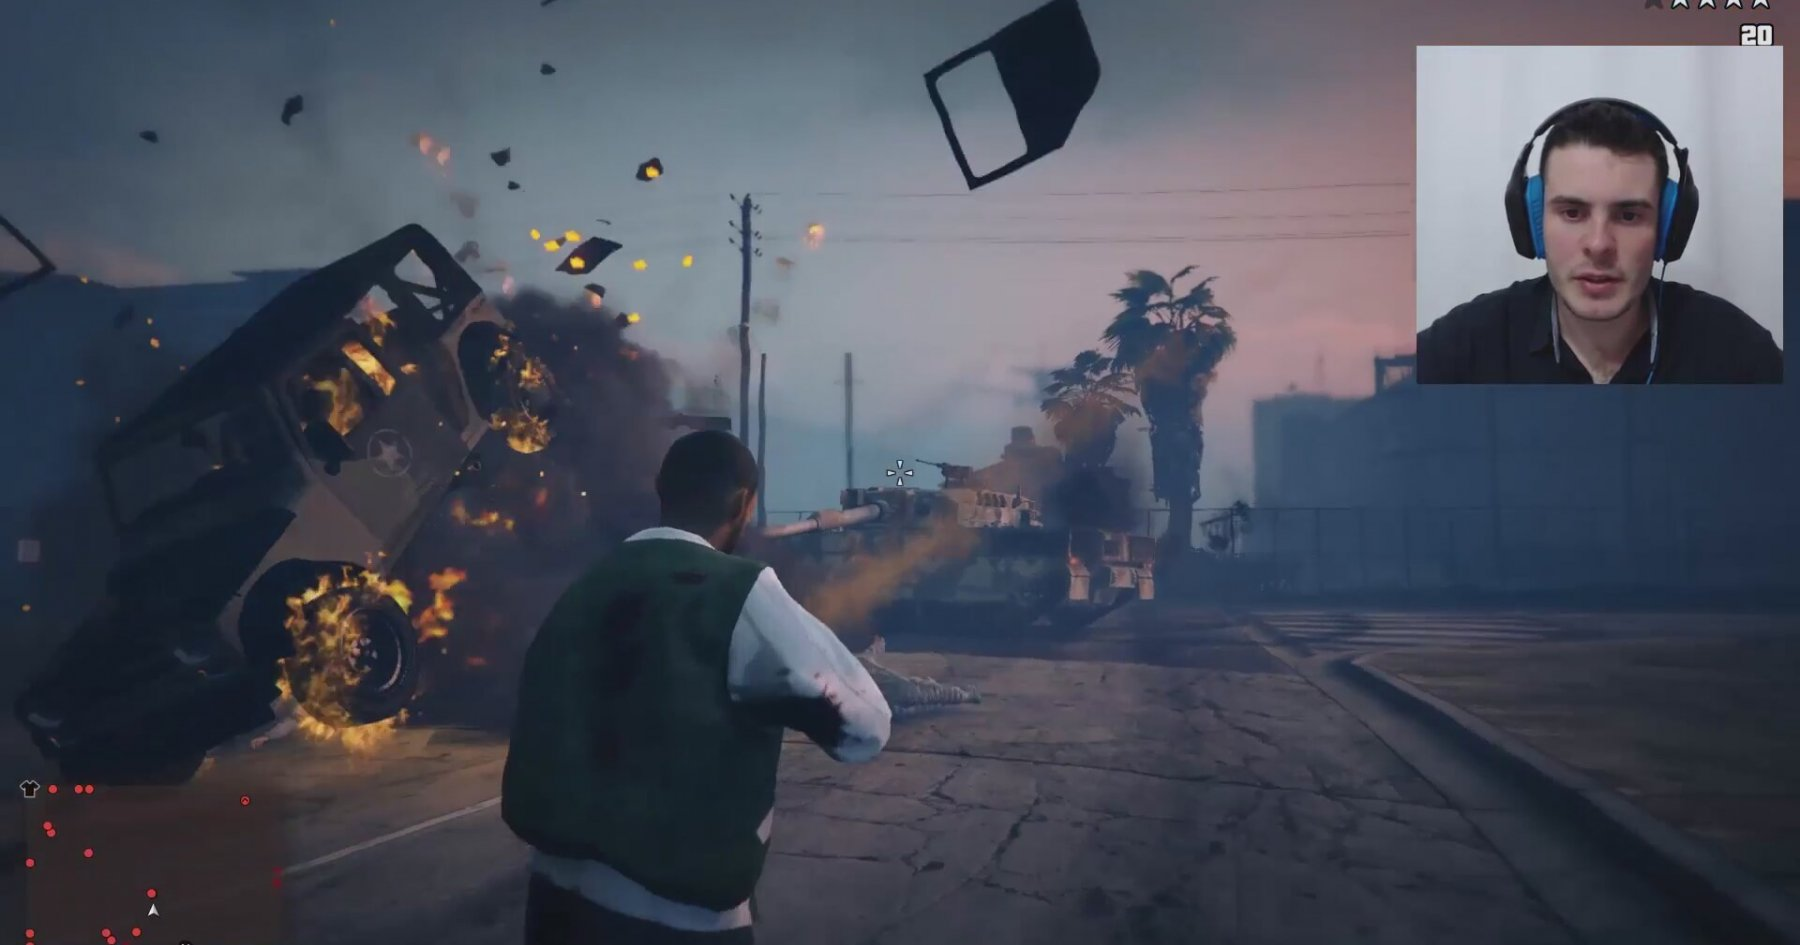 Gta 5 pc controls how to fly